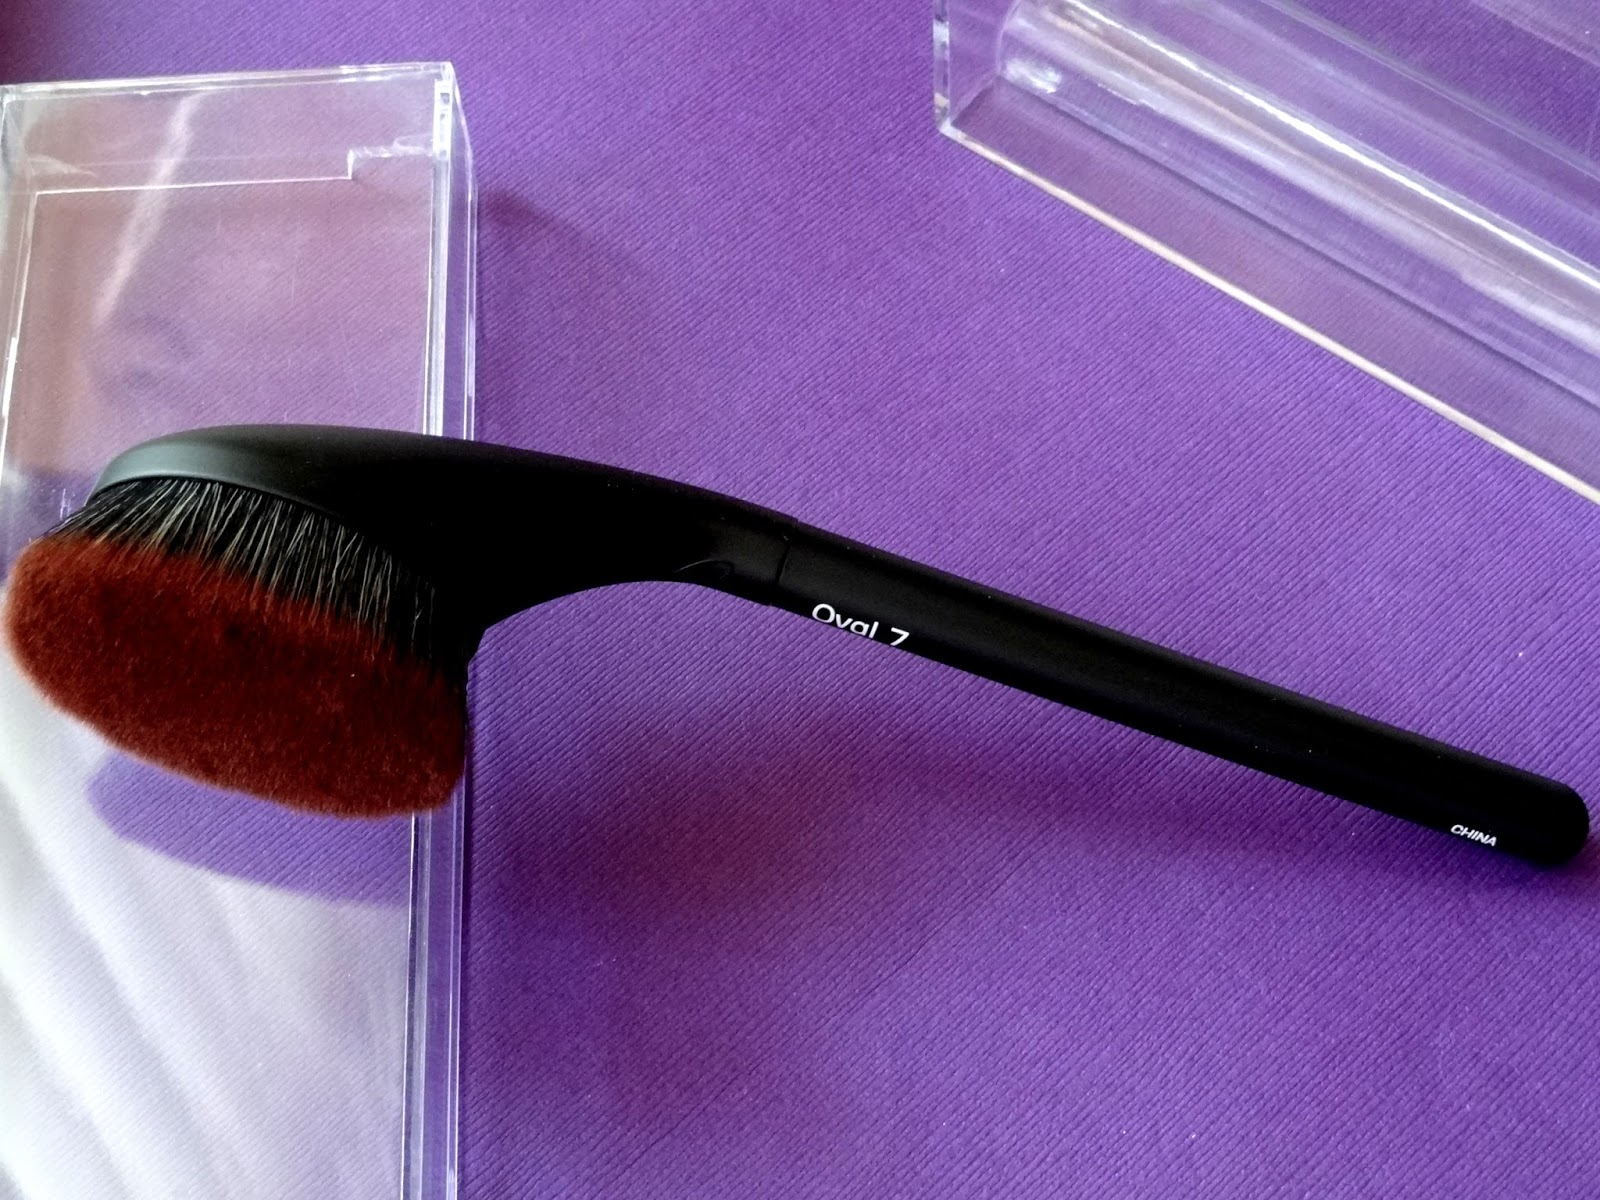 Makeup beauty and more brushcraft by artis oval 7 brush for Brush craft vs artis